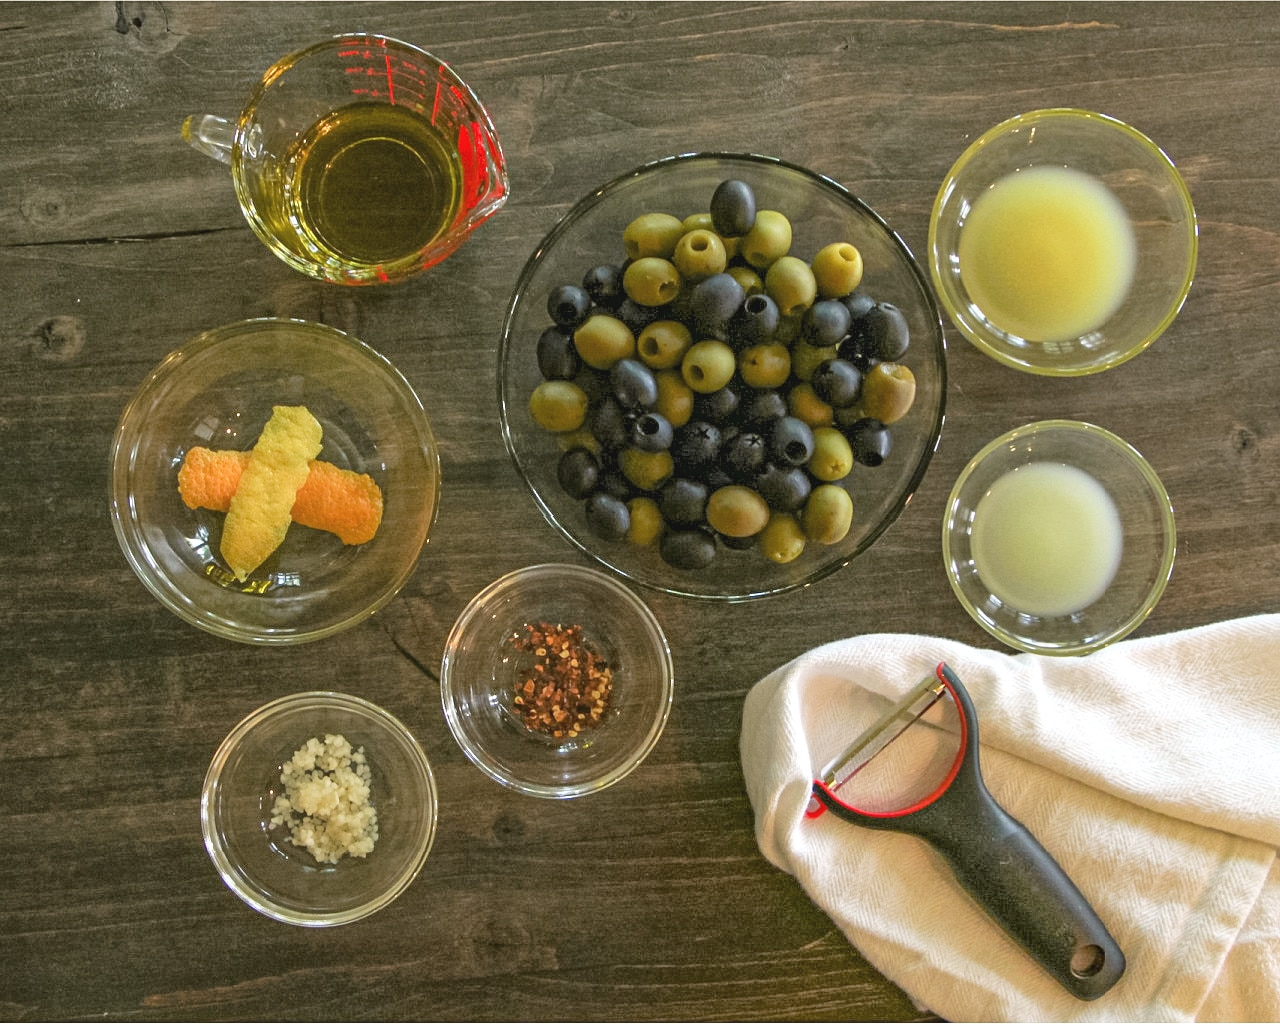 Ingredients needed to make Citrus Marinaded Olives on a wood cutting board.